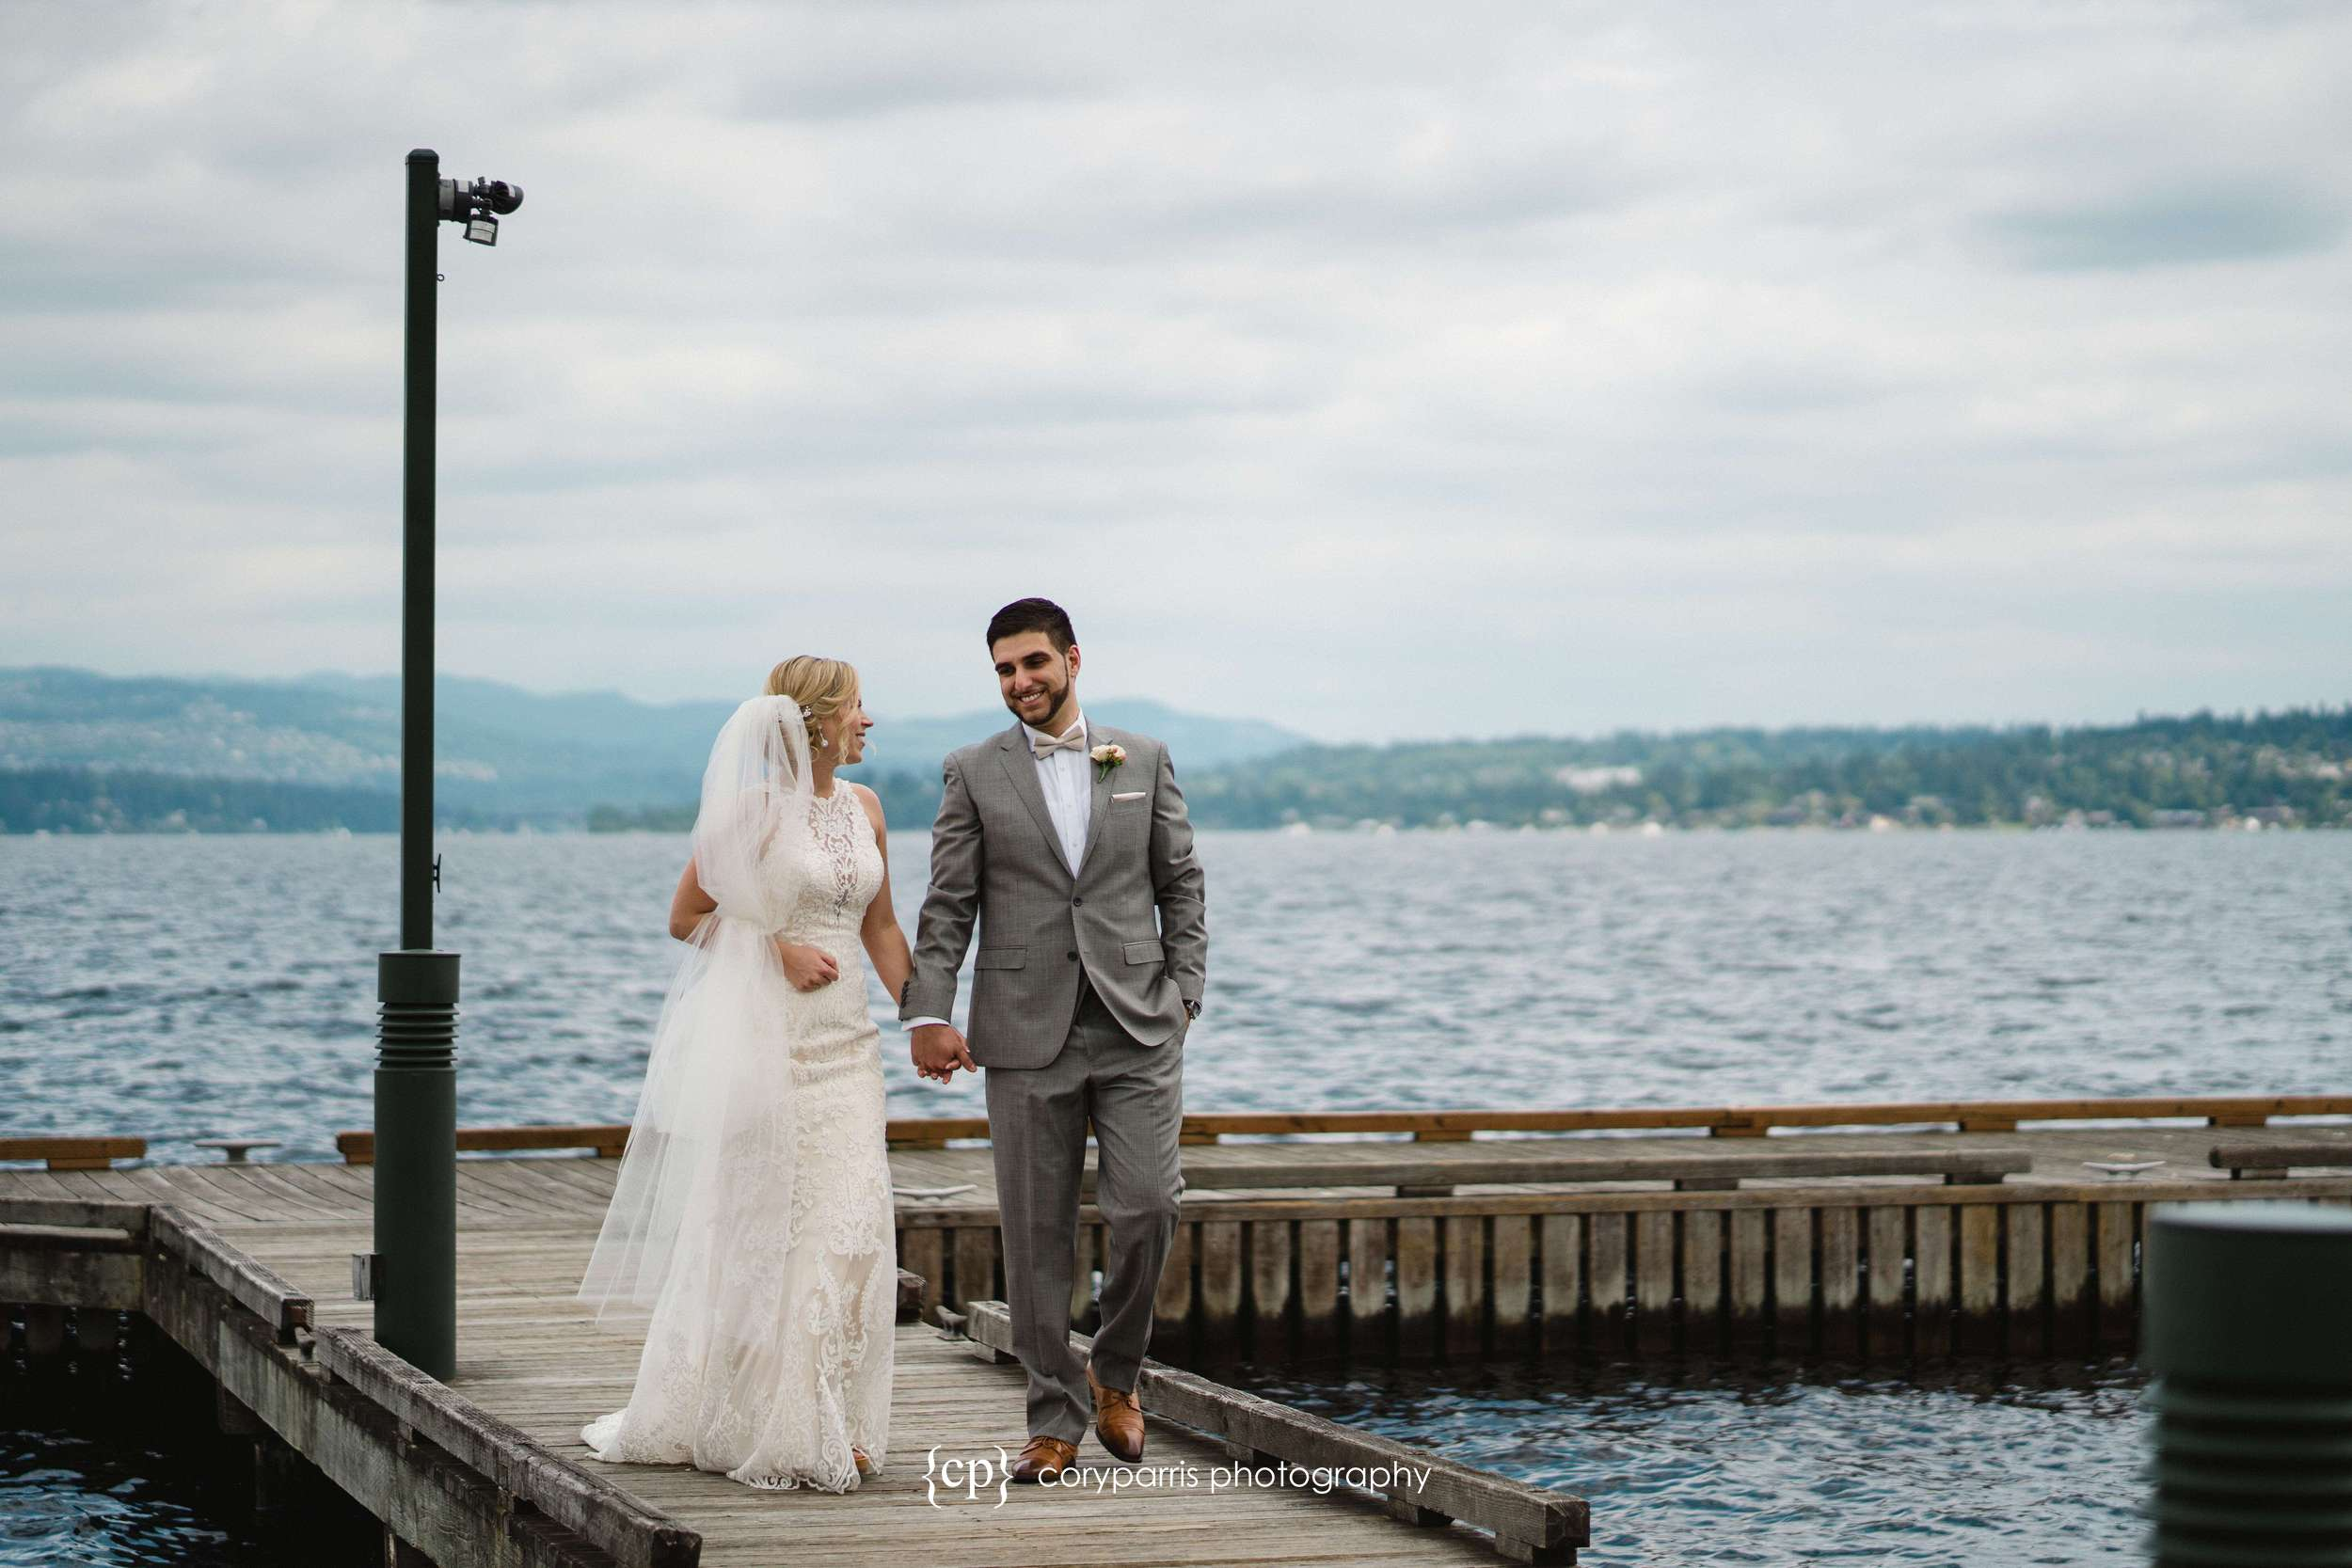 Lacey & Payam's wedding at the Seattle Tennis Club!